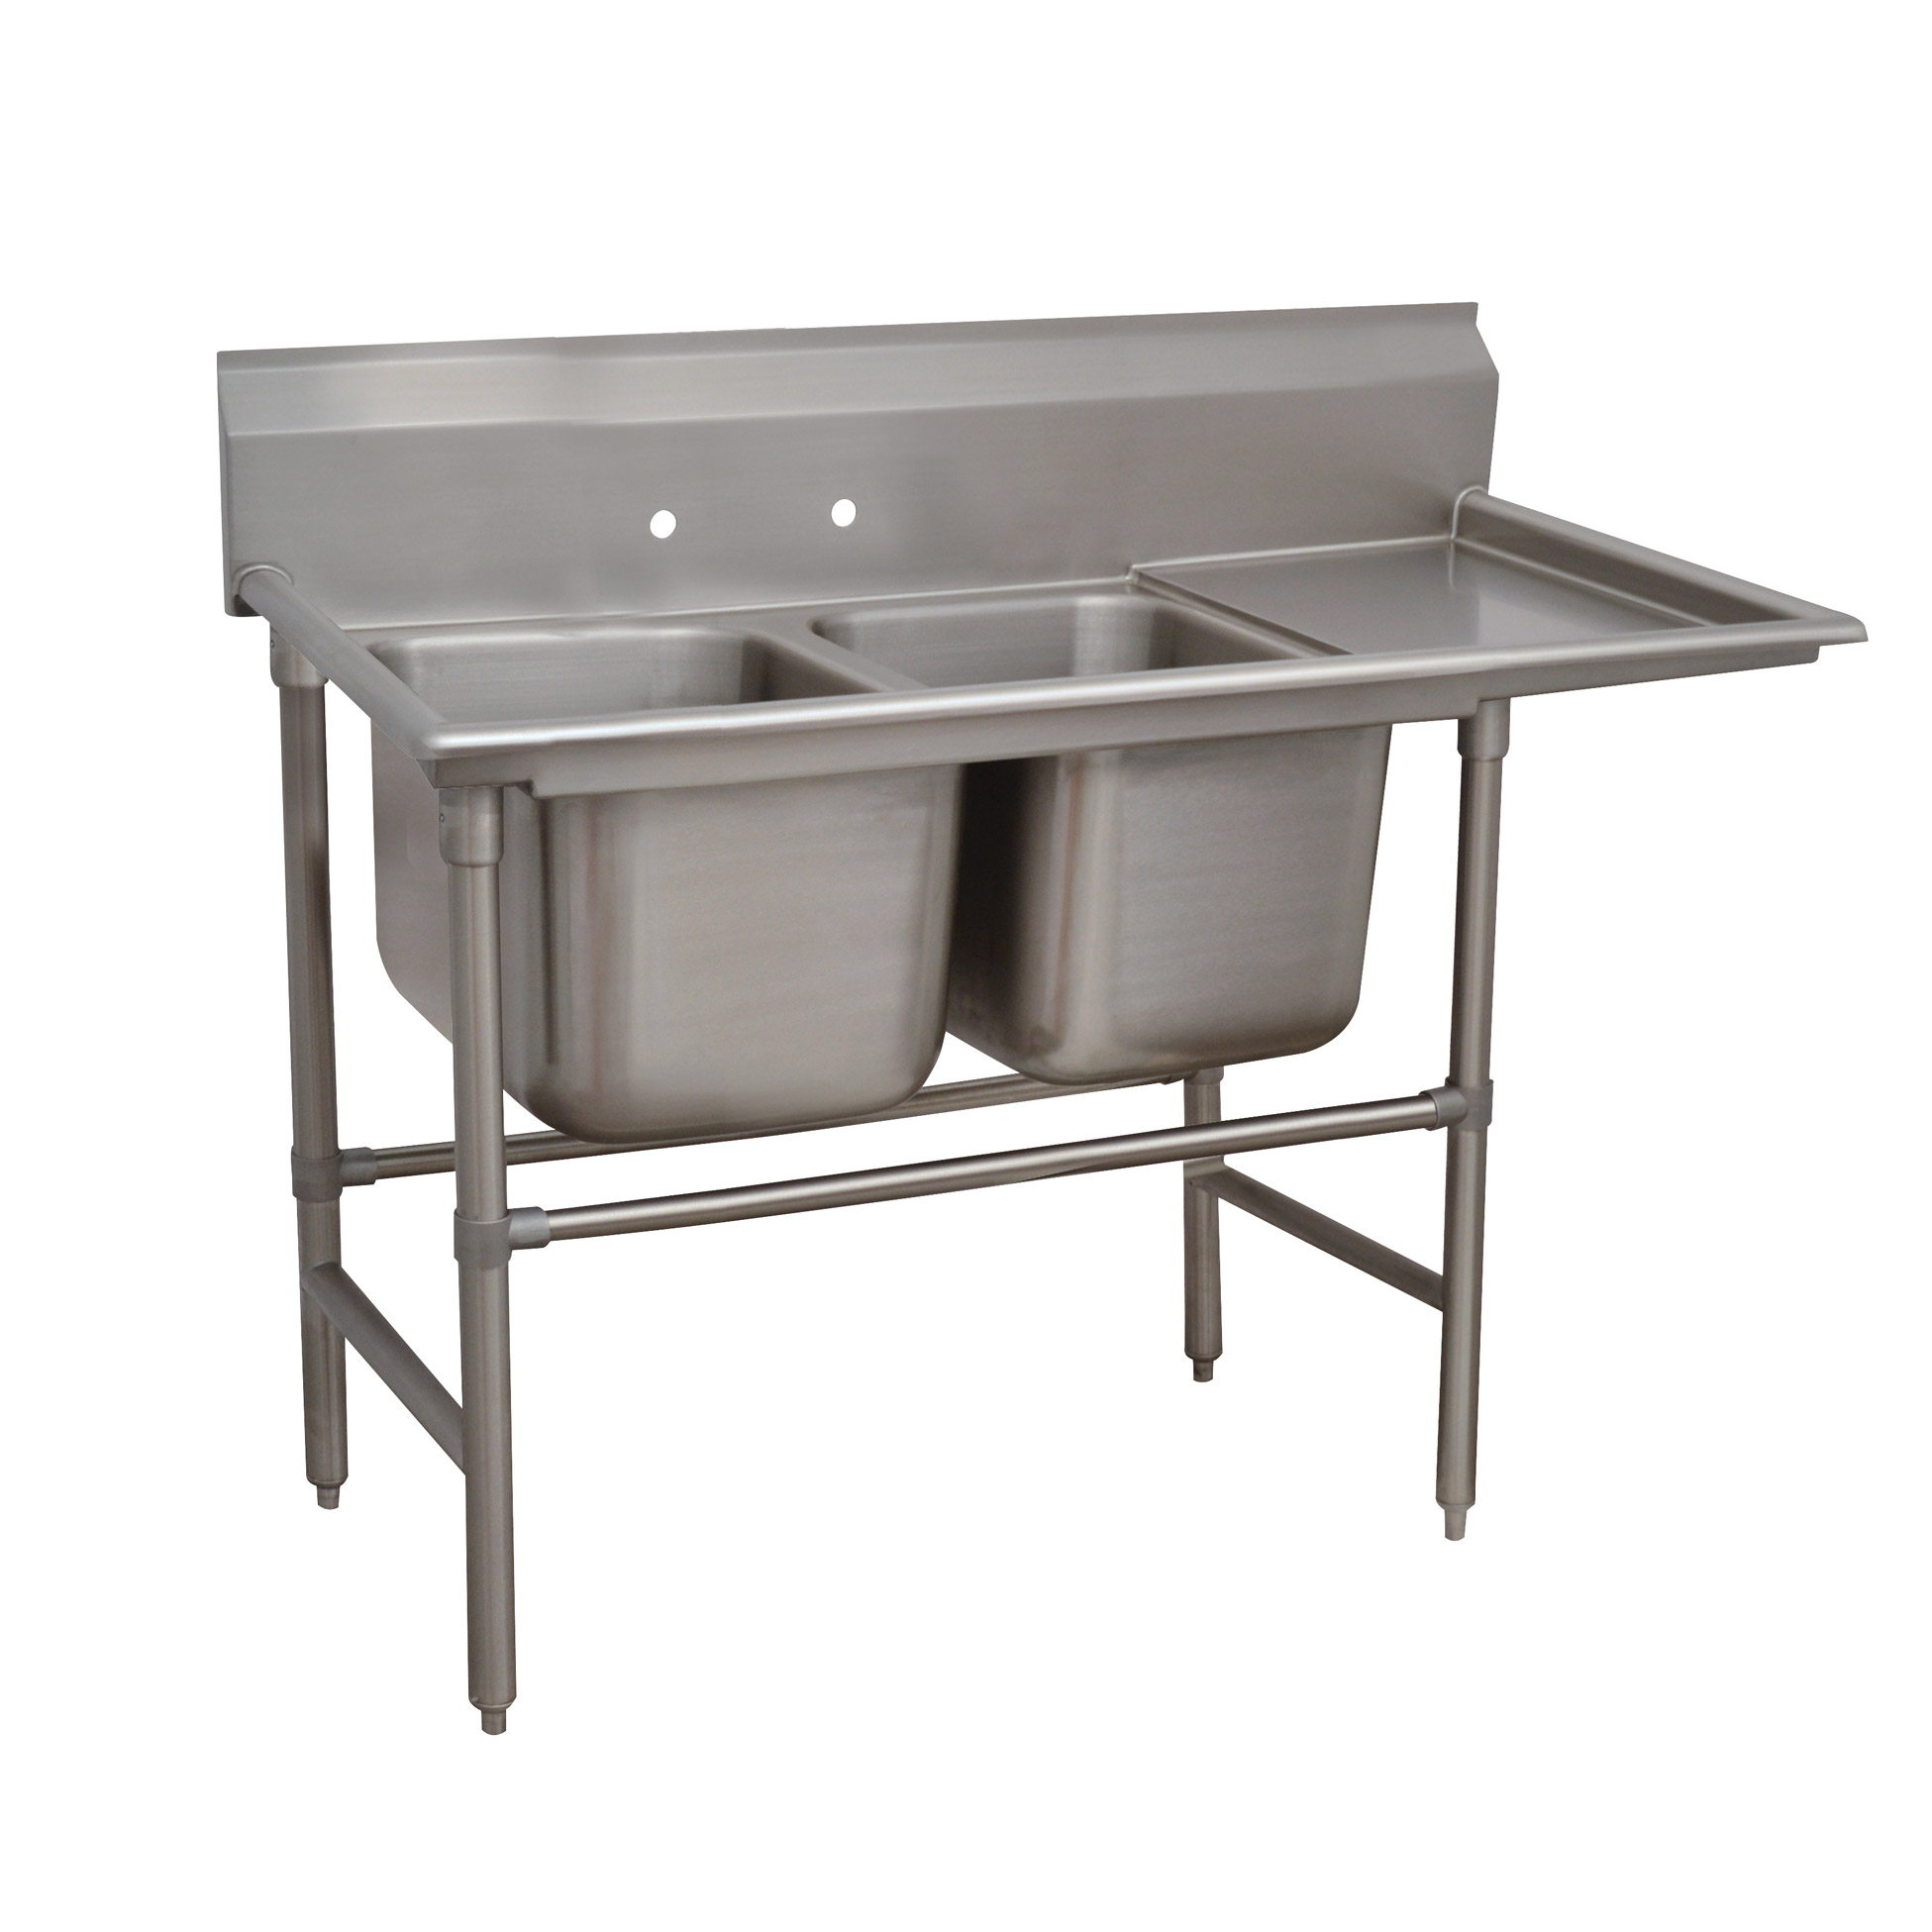 Advance Tabco 94-2-36-36R sink, (2) two compartment